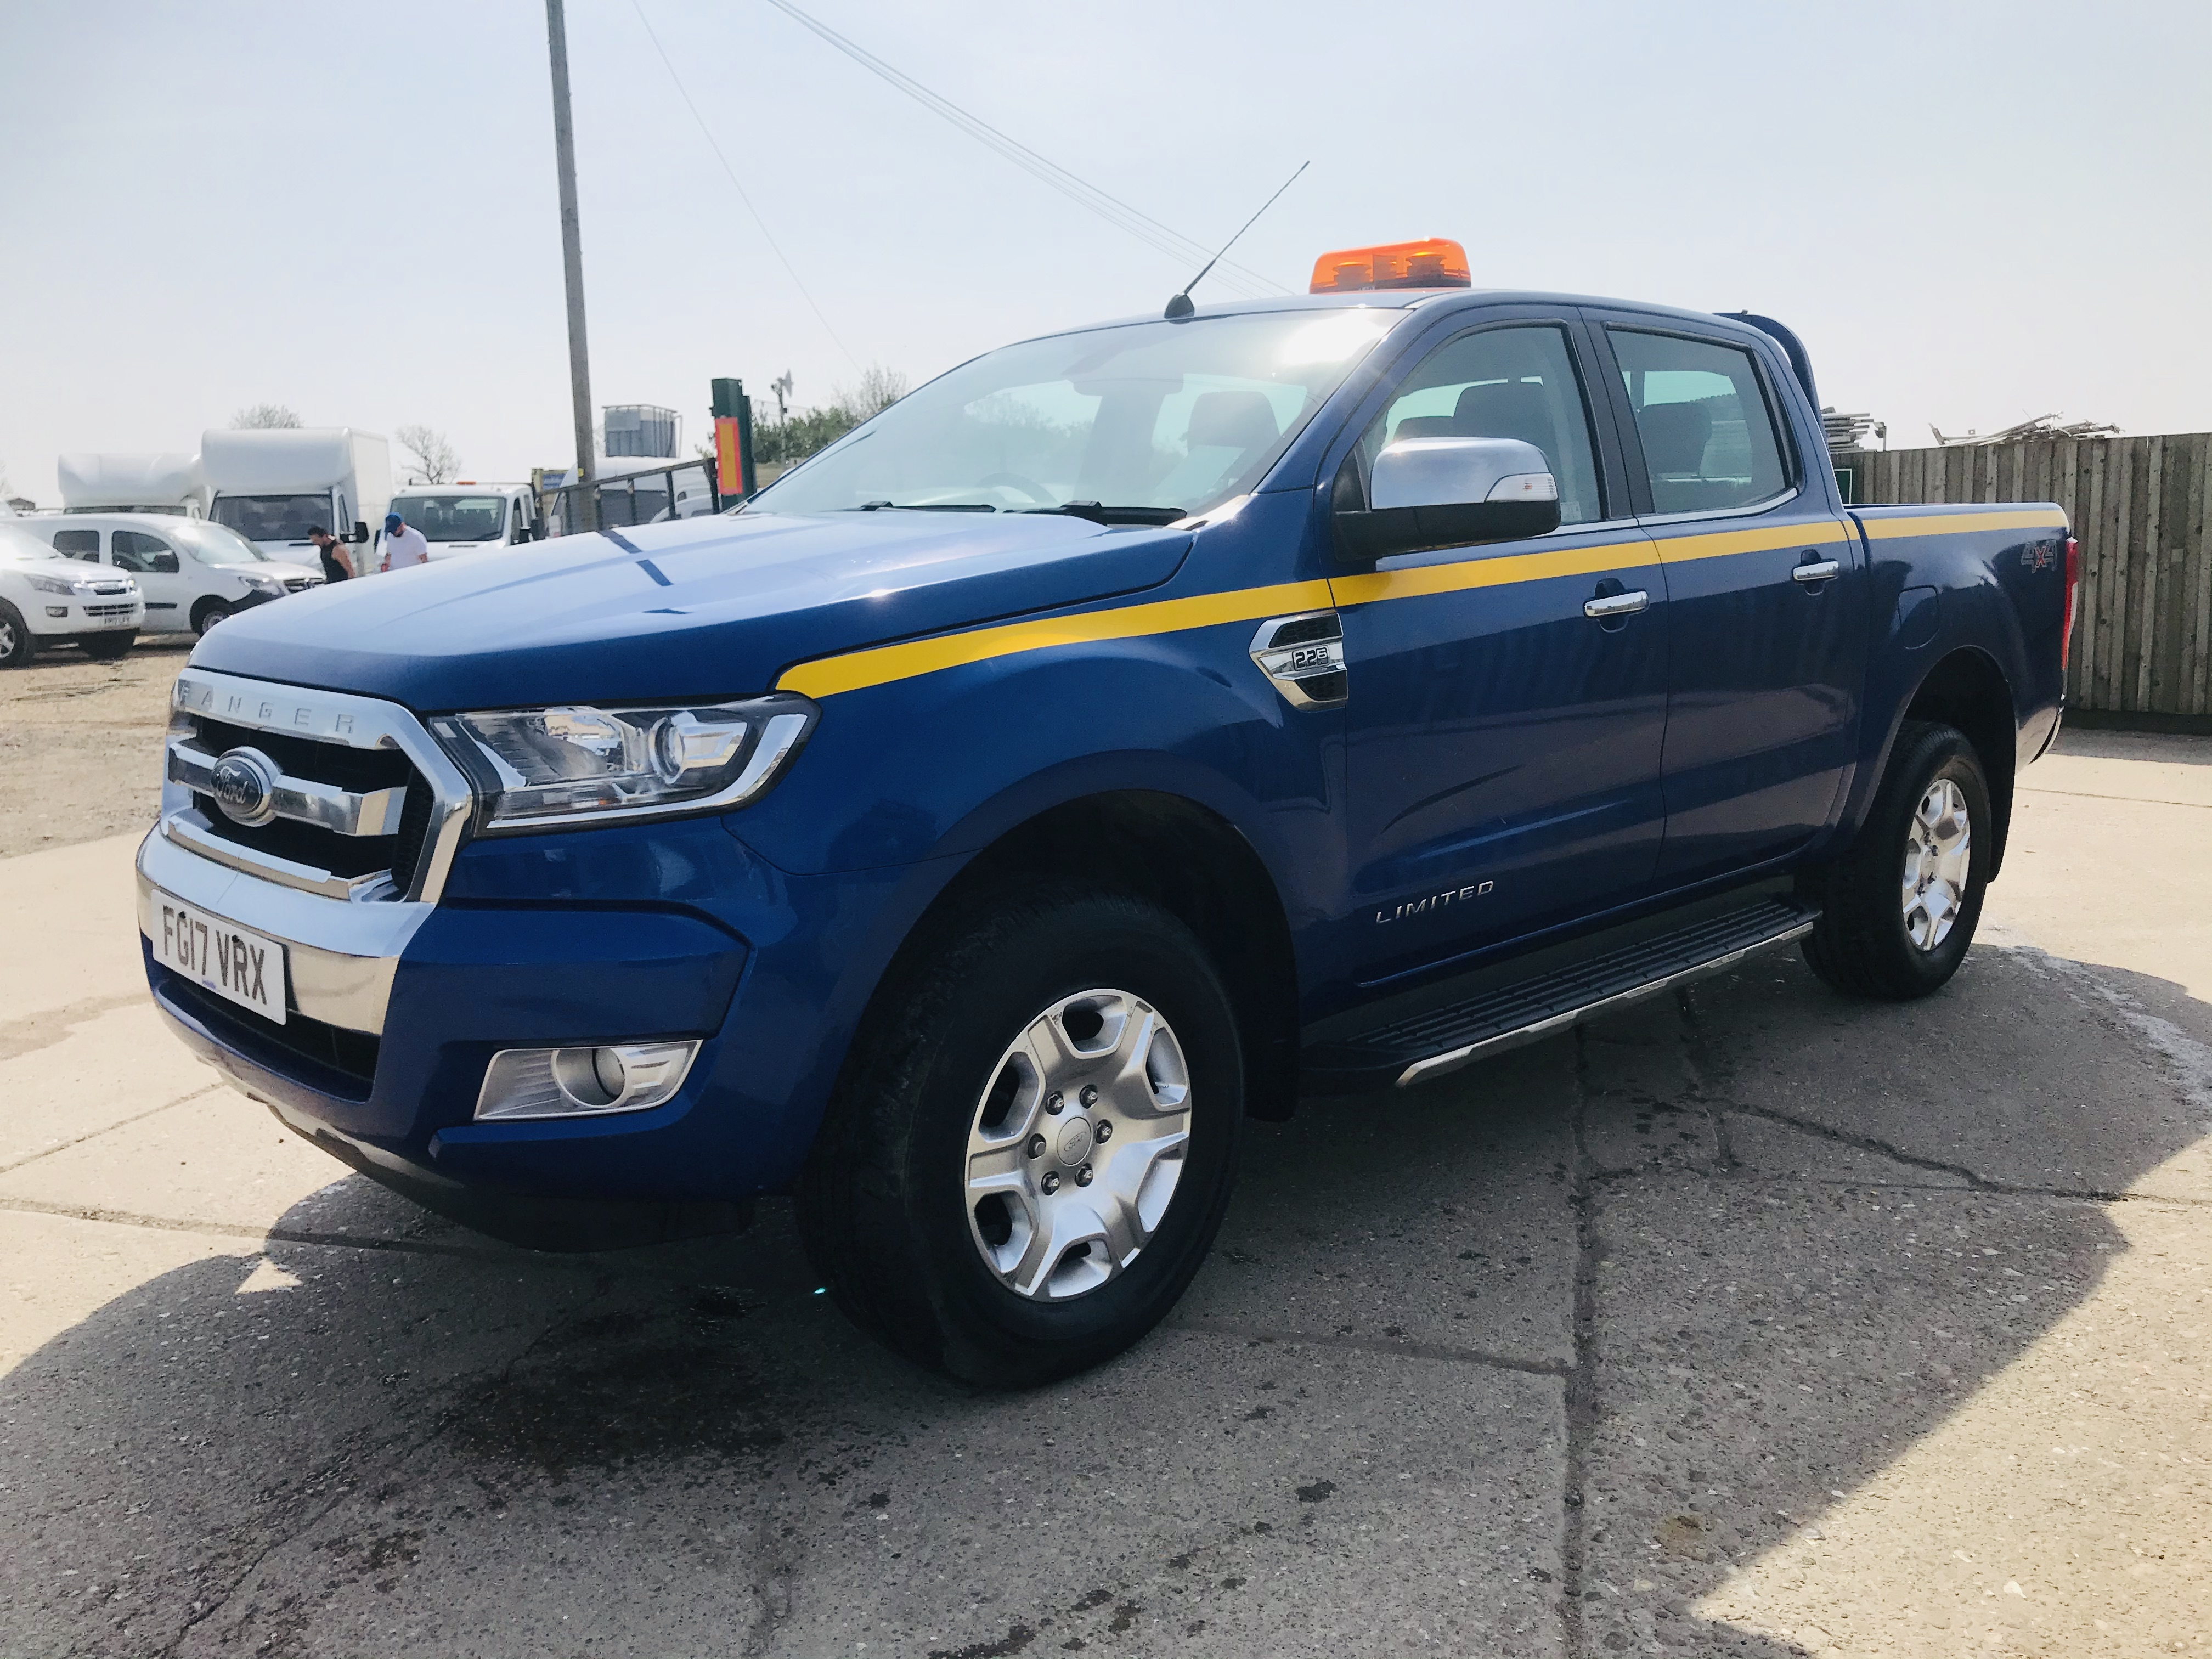 """ON SALE FORD RANGER 2.2TDCI """"LIMITED"""" D/C PICK UP (17 REG) 1 OWNER FSH - FULL LEATHER - CLIMATE & AC - Image 6 of 38"""